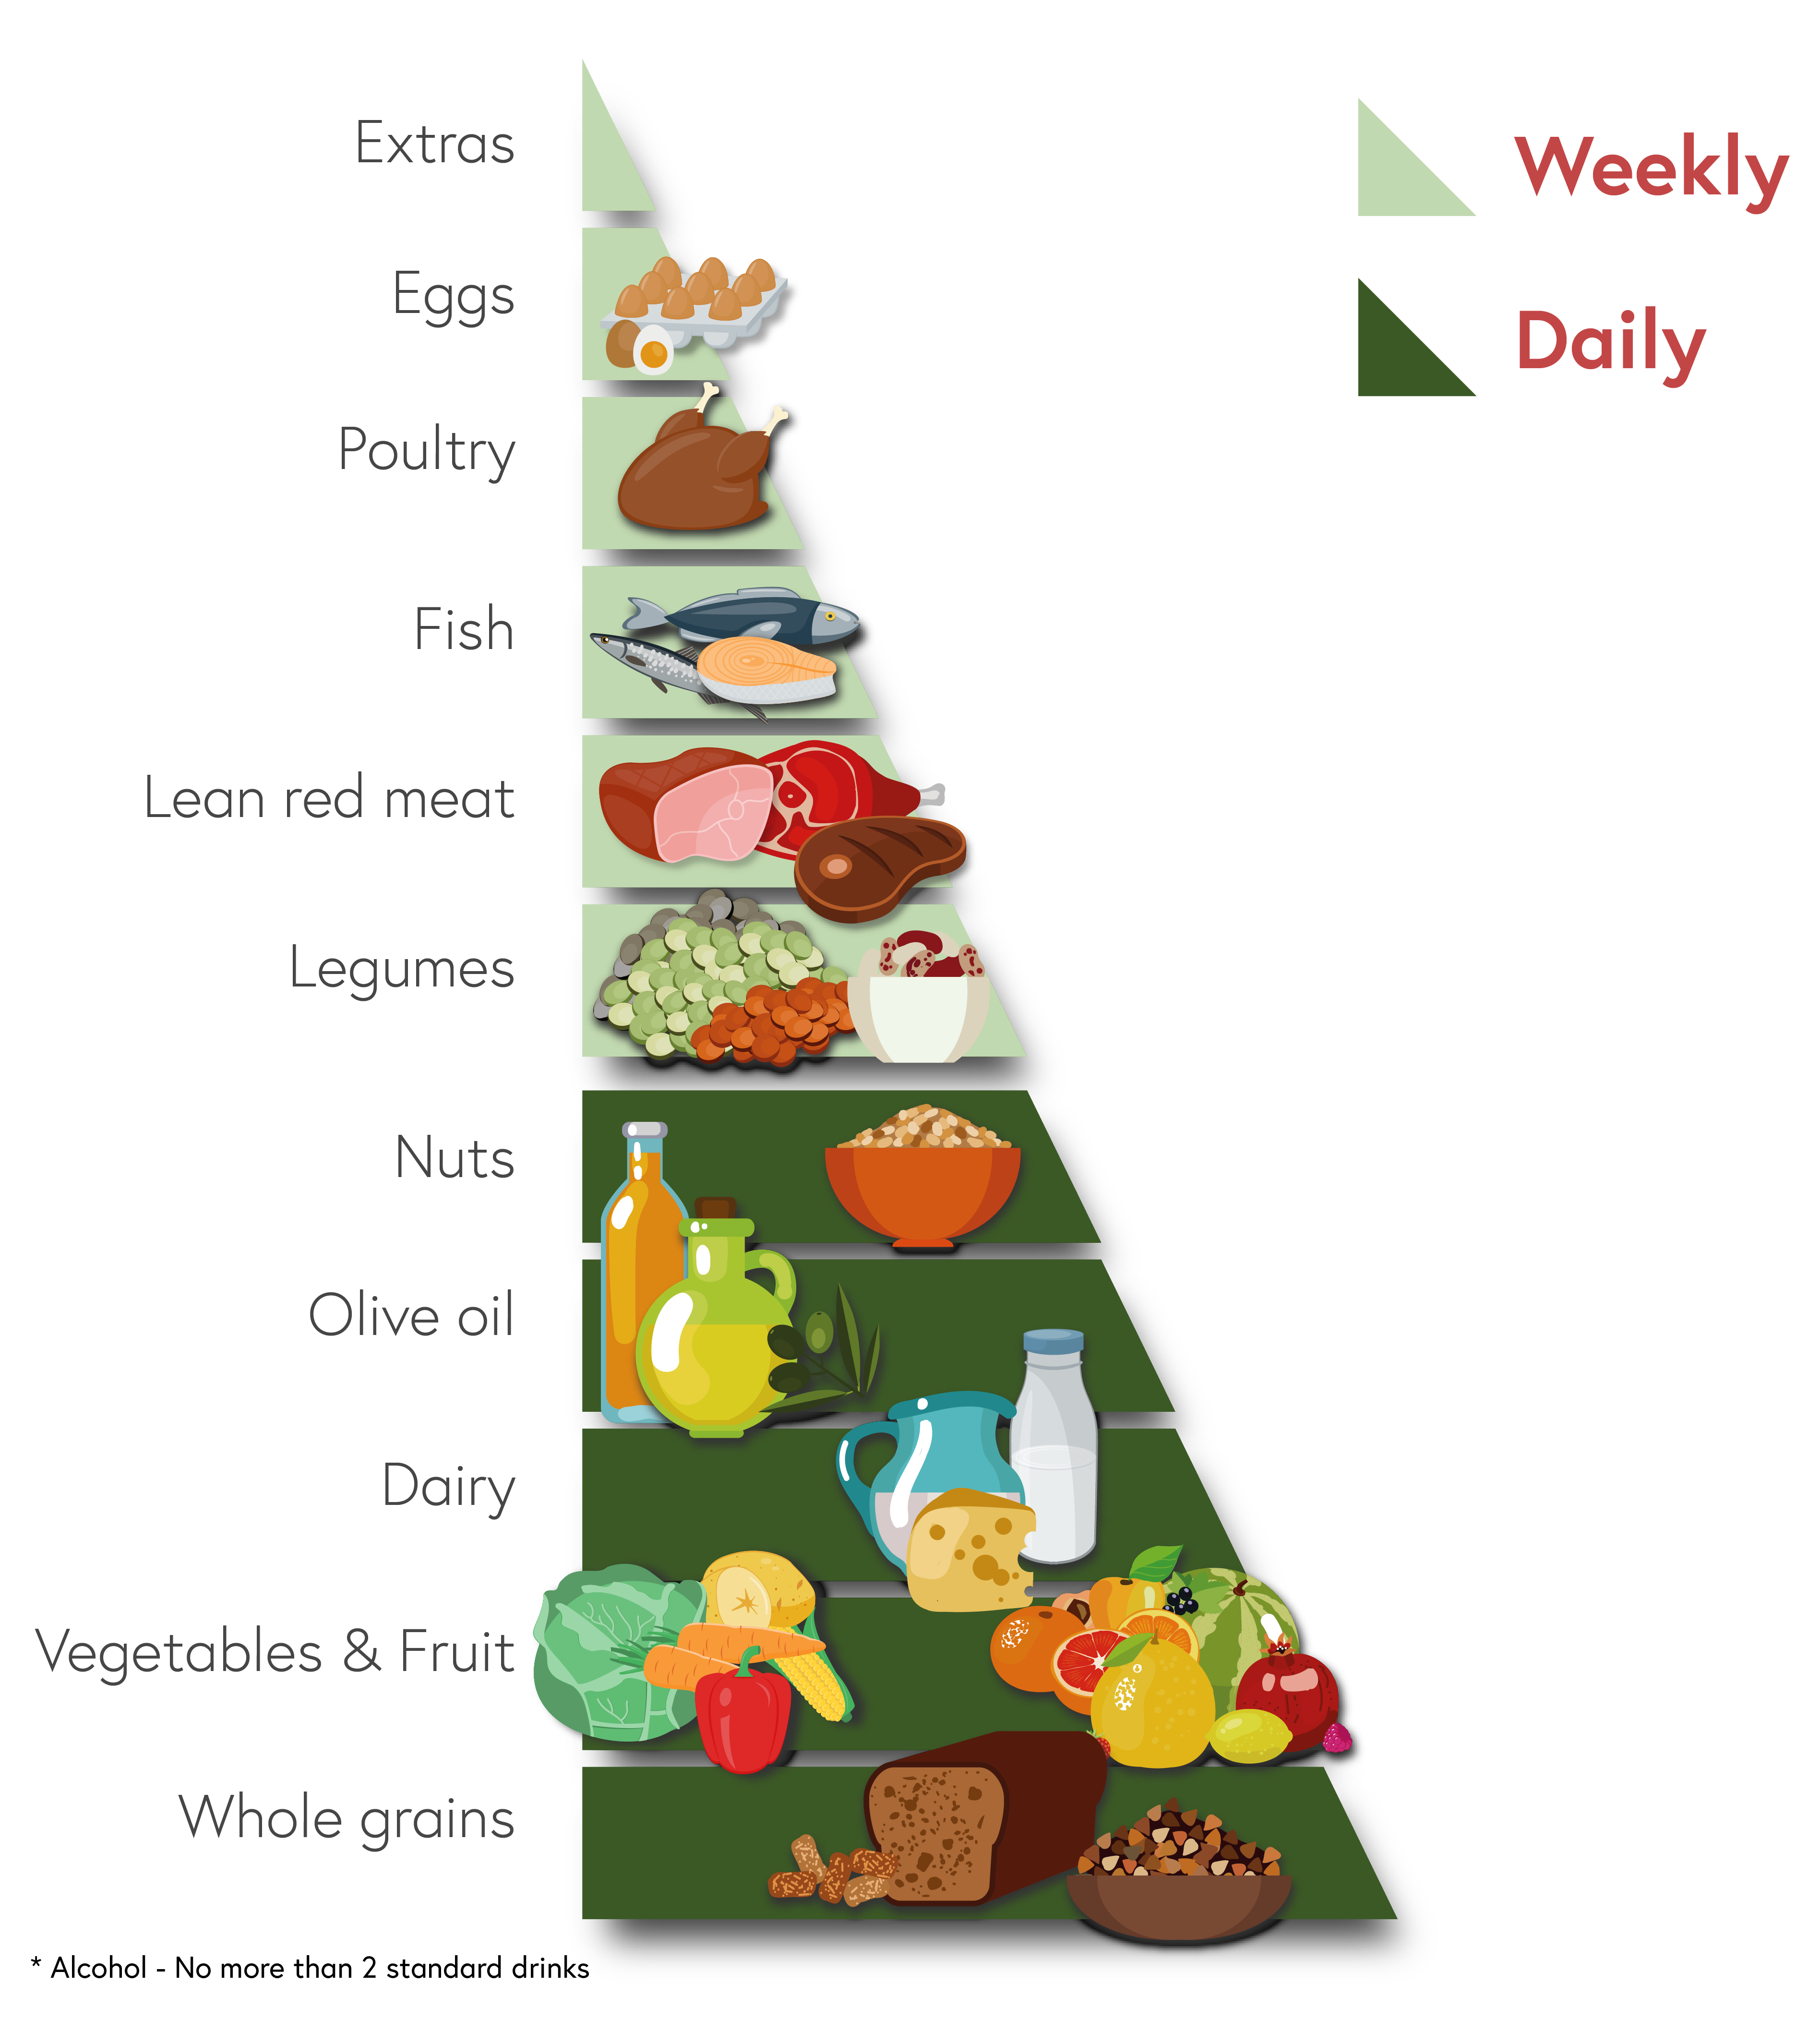 The Mod*i*Med diet pyramid infographic